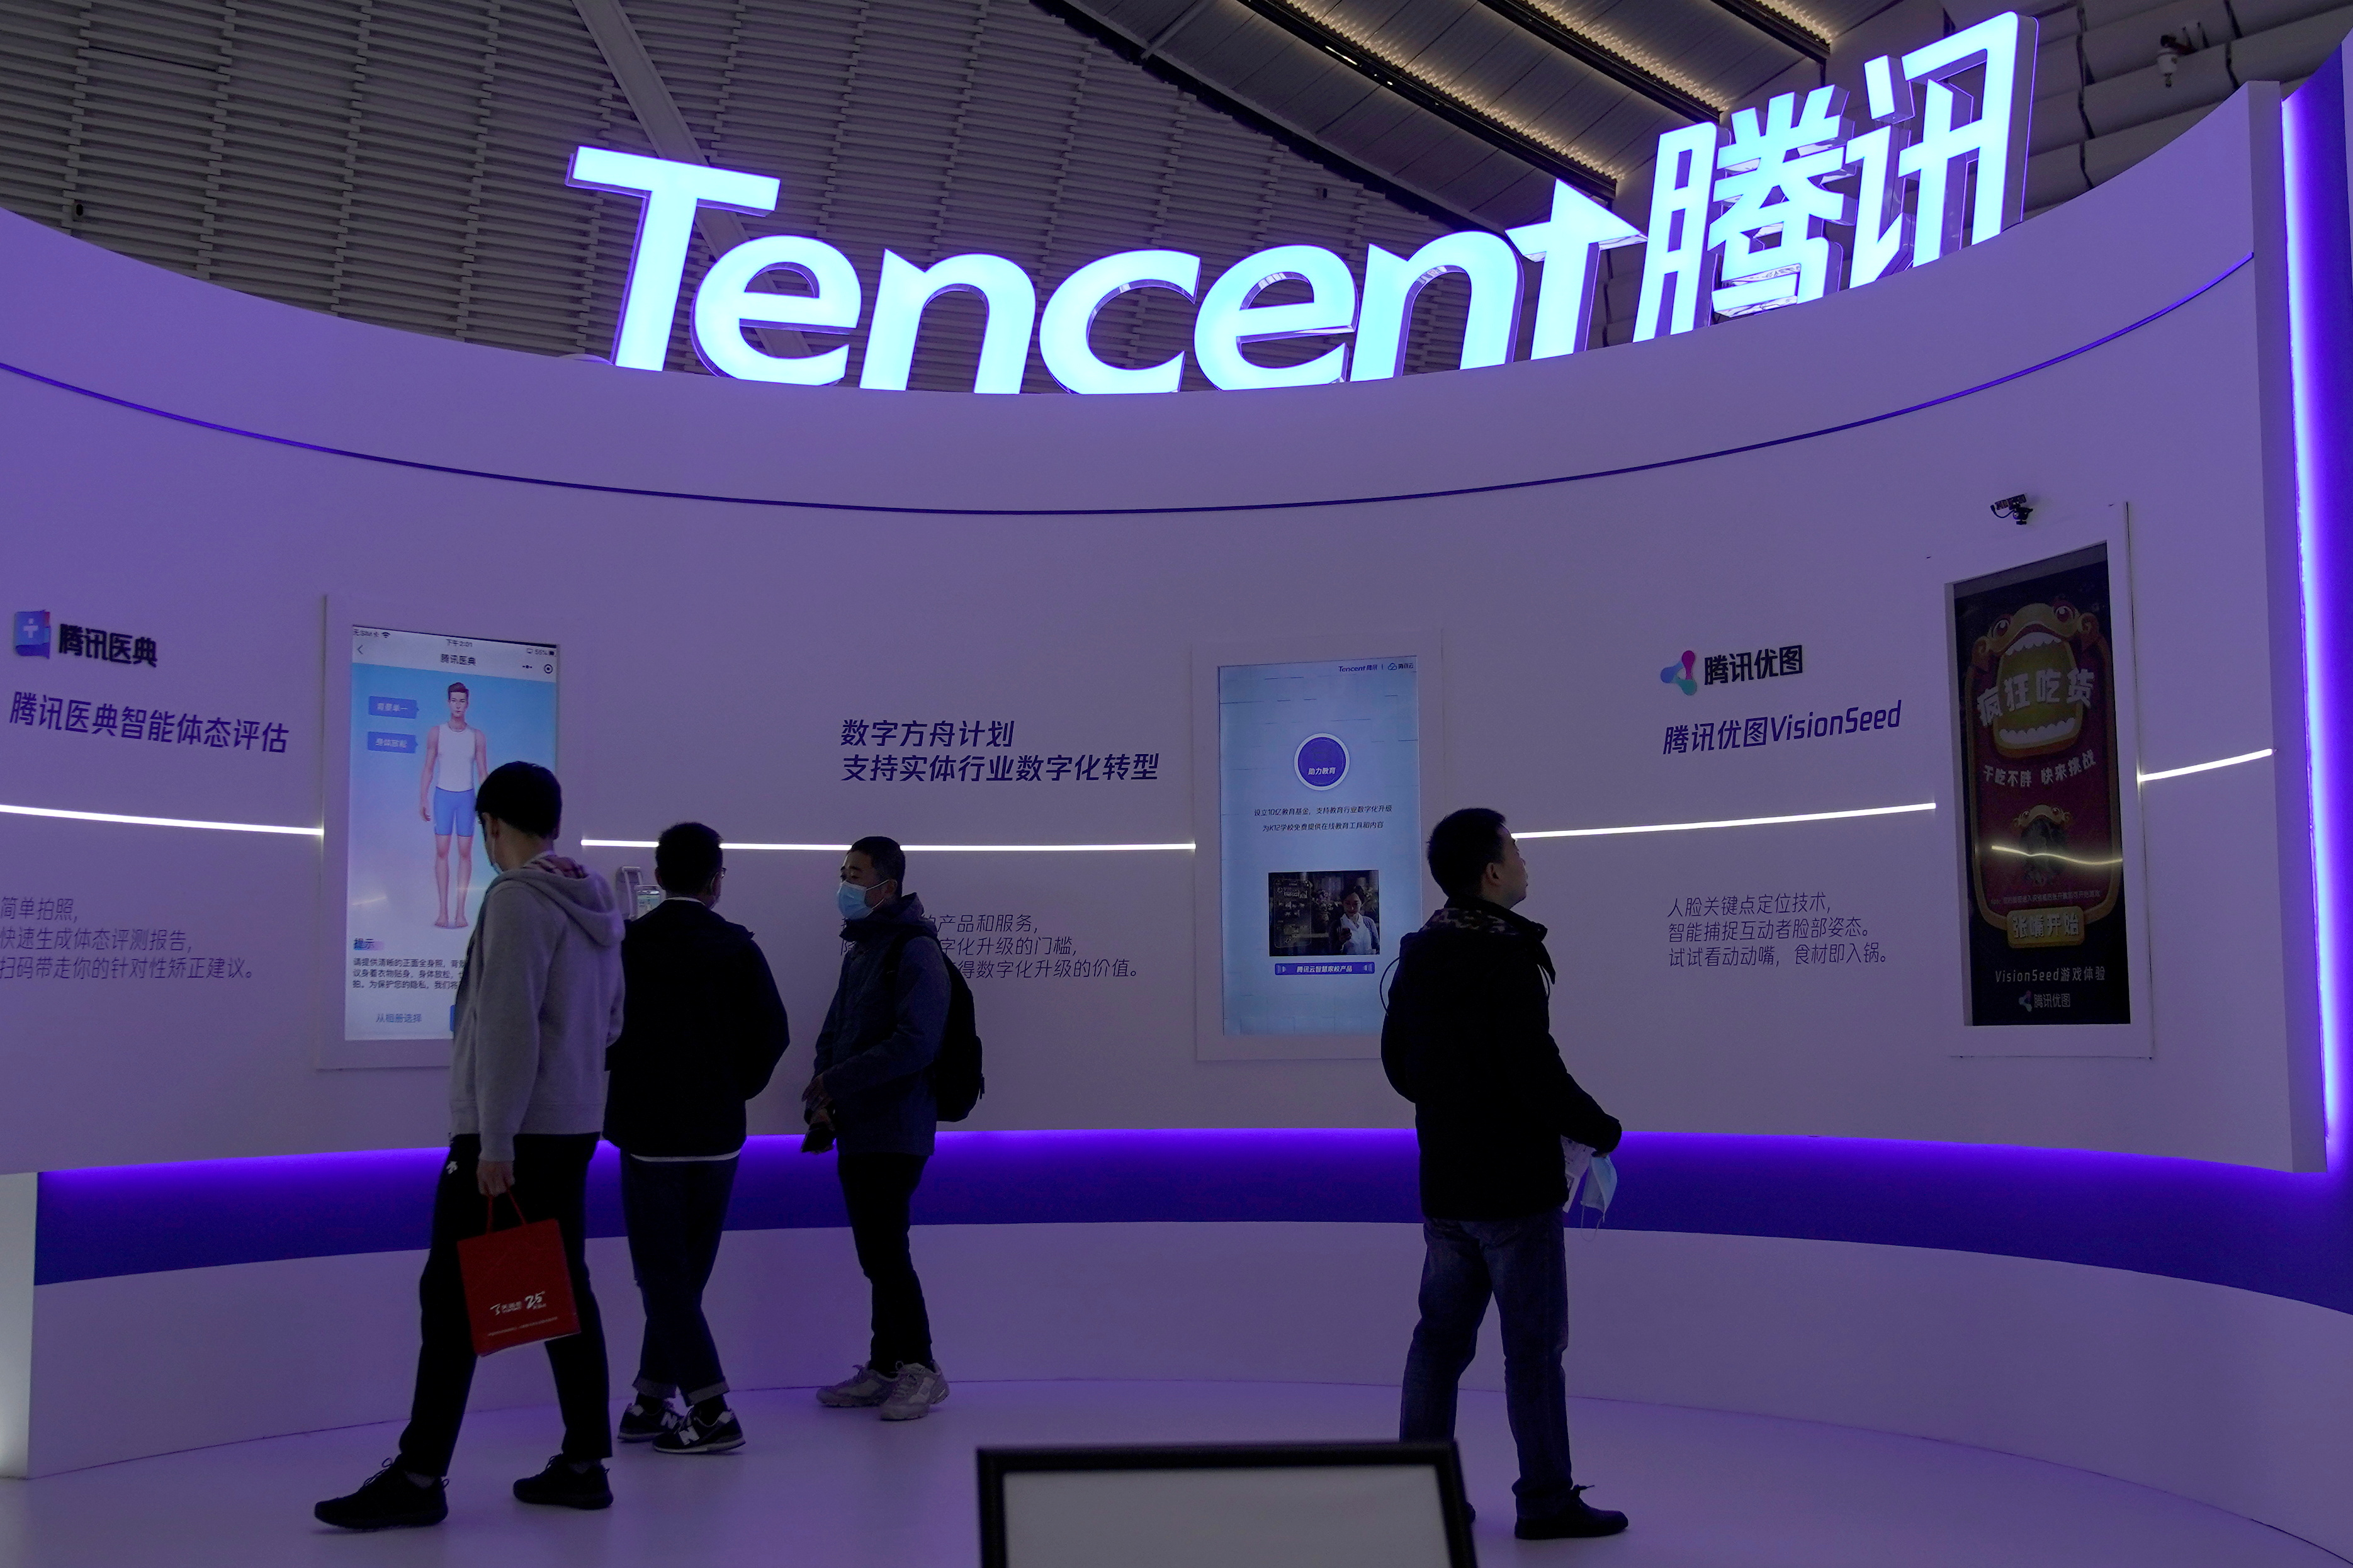 A logo of Tencent is seen during the World Internet Conference (WIC) in Wuzhen, Zhejiang province, China, November 23, 2020. REUTERS/Aly Song